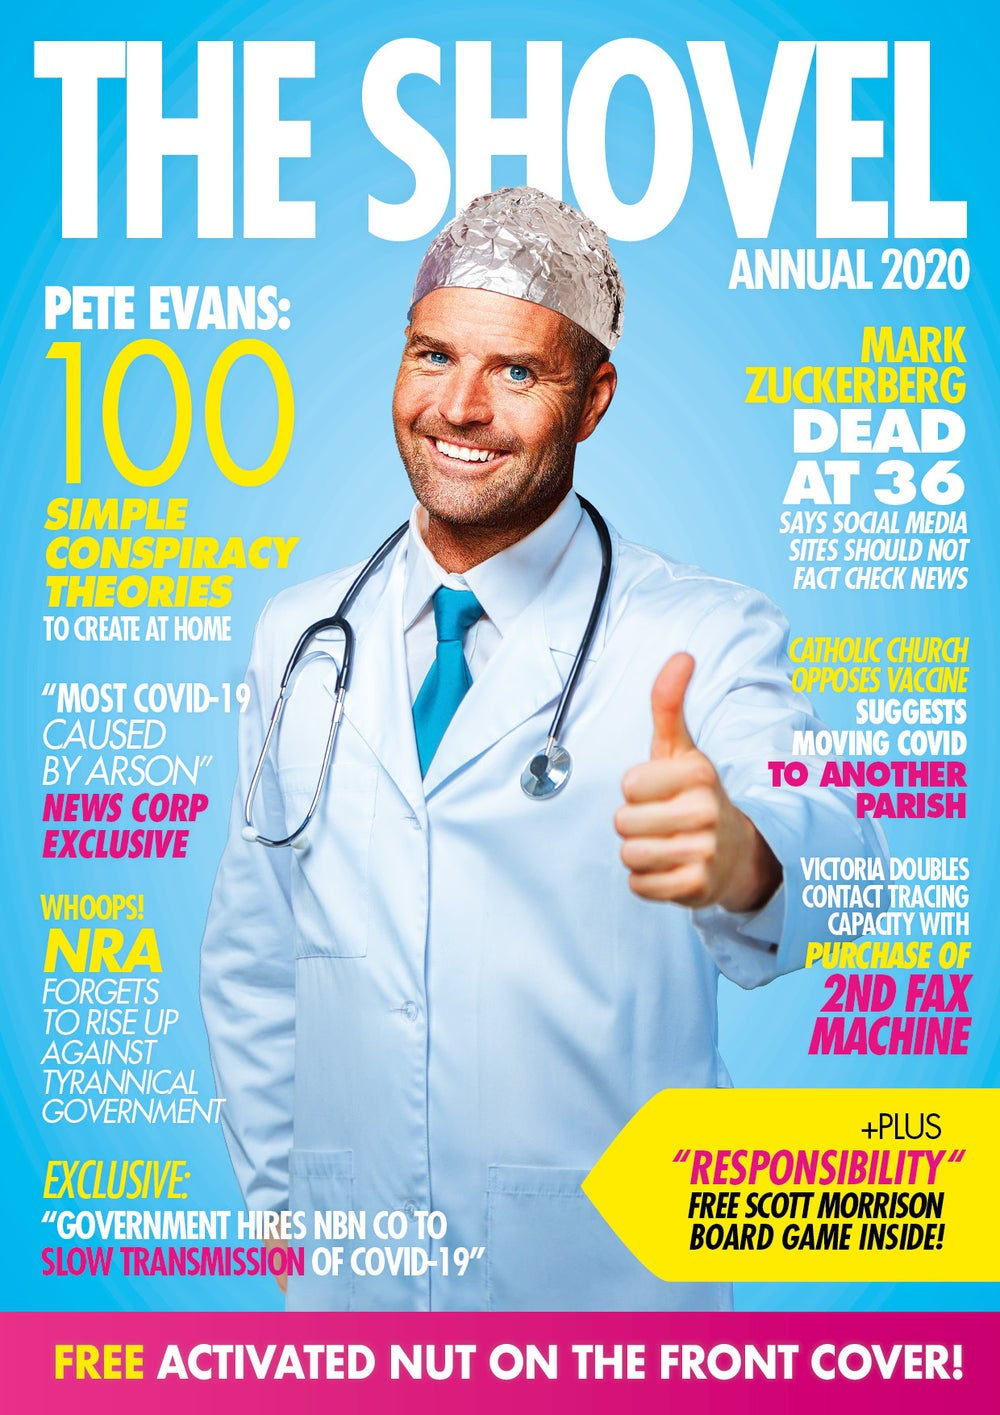 Image of The Shovel Annual 2020